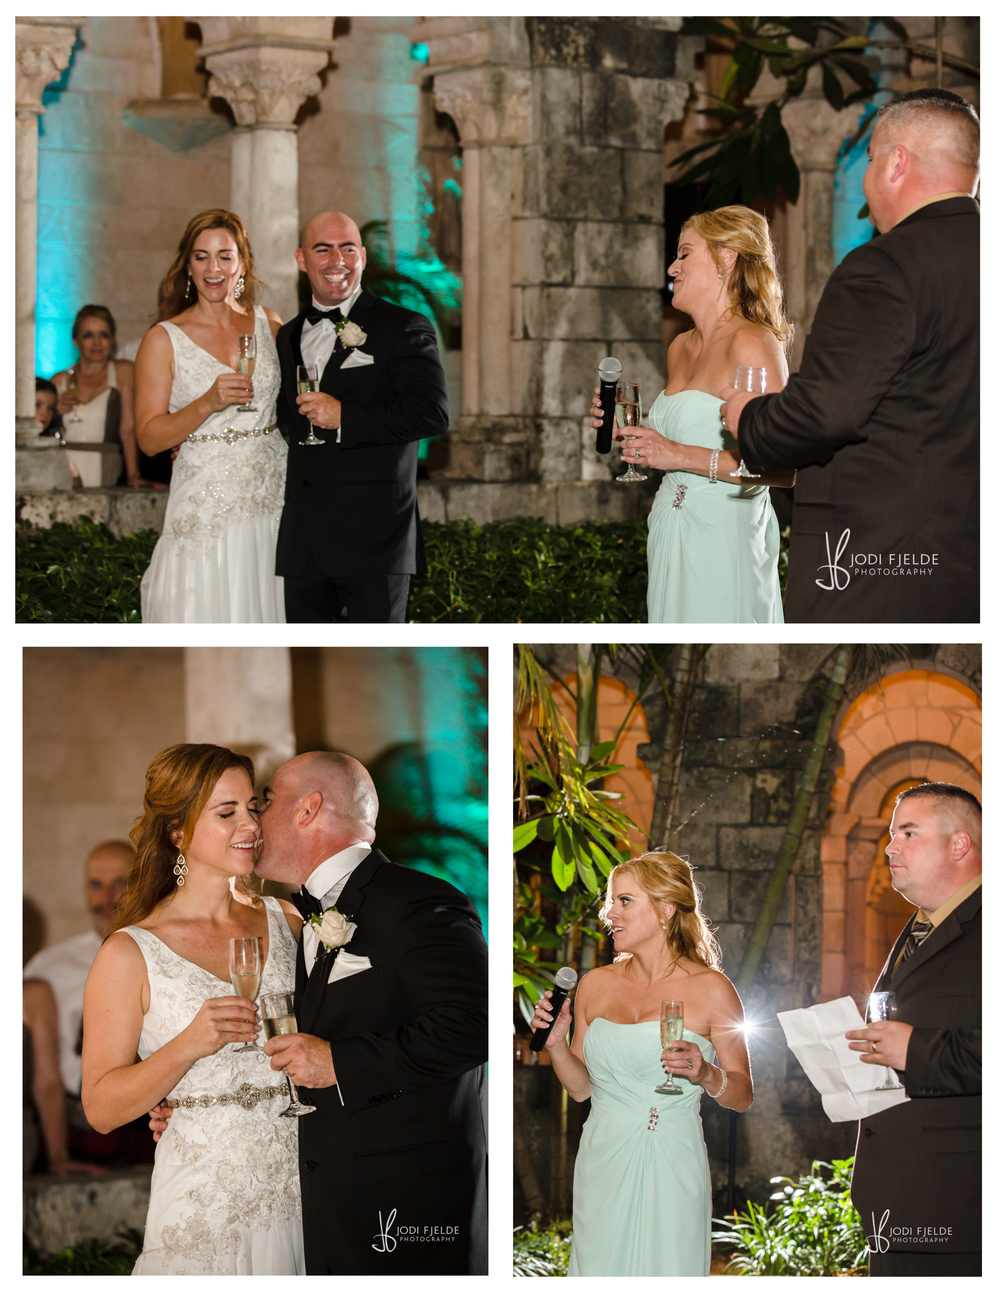 Ancient_Spanish_Monastery_Miami_Florida_wedding_Gio_Iggy_Jodi_Fjelde_Photography_18.jpg